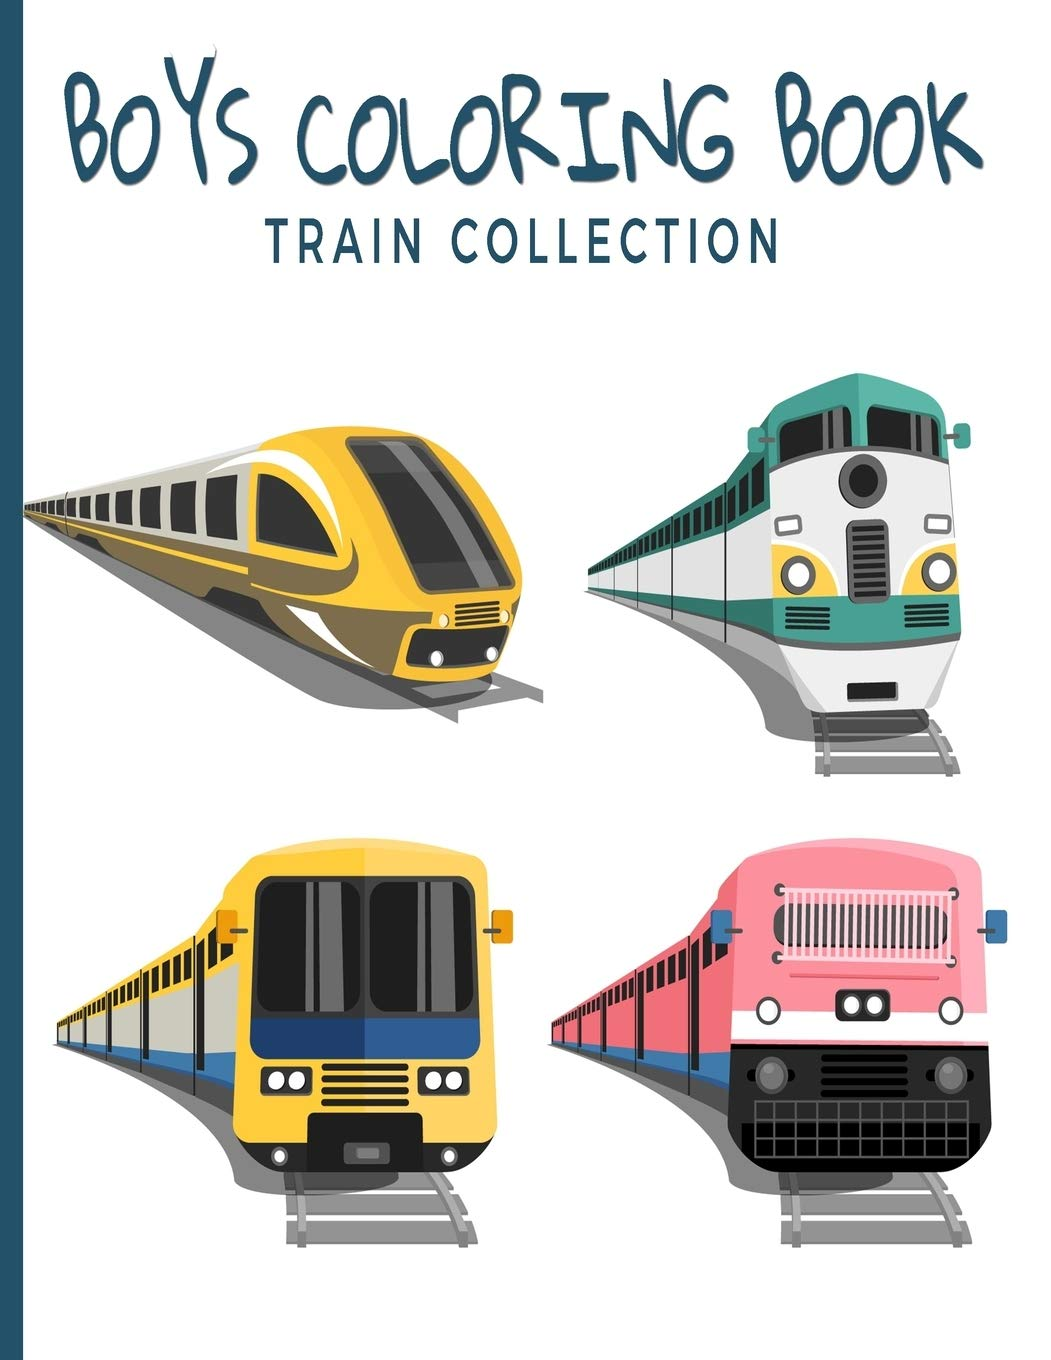 Boys Coloring Book Train Collection For Adults Teens And Kids Fun Easy And Relaxing Pages Relaxation And De Stress Relief Activity Sheets Inspire Creativity Reduce Stress Color Therapy Designs Dazenmonk 9781082154935